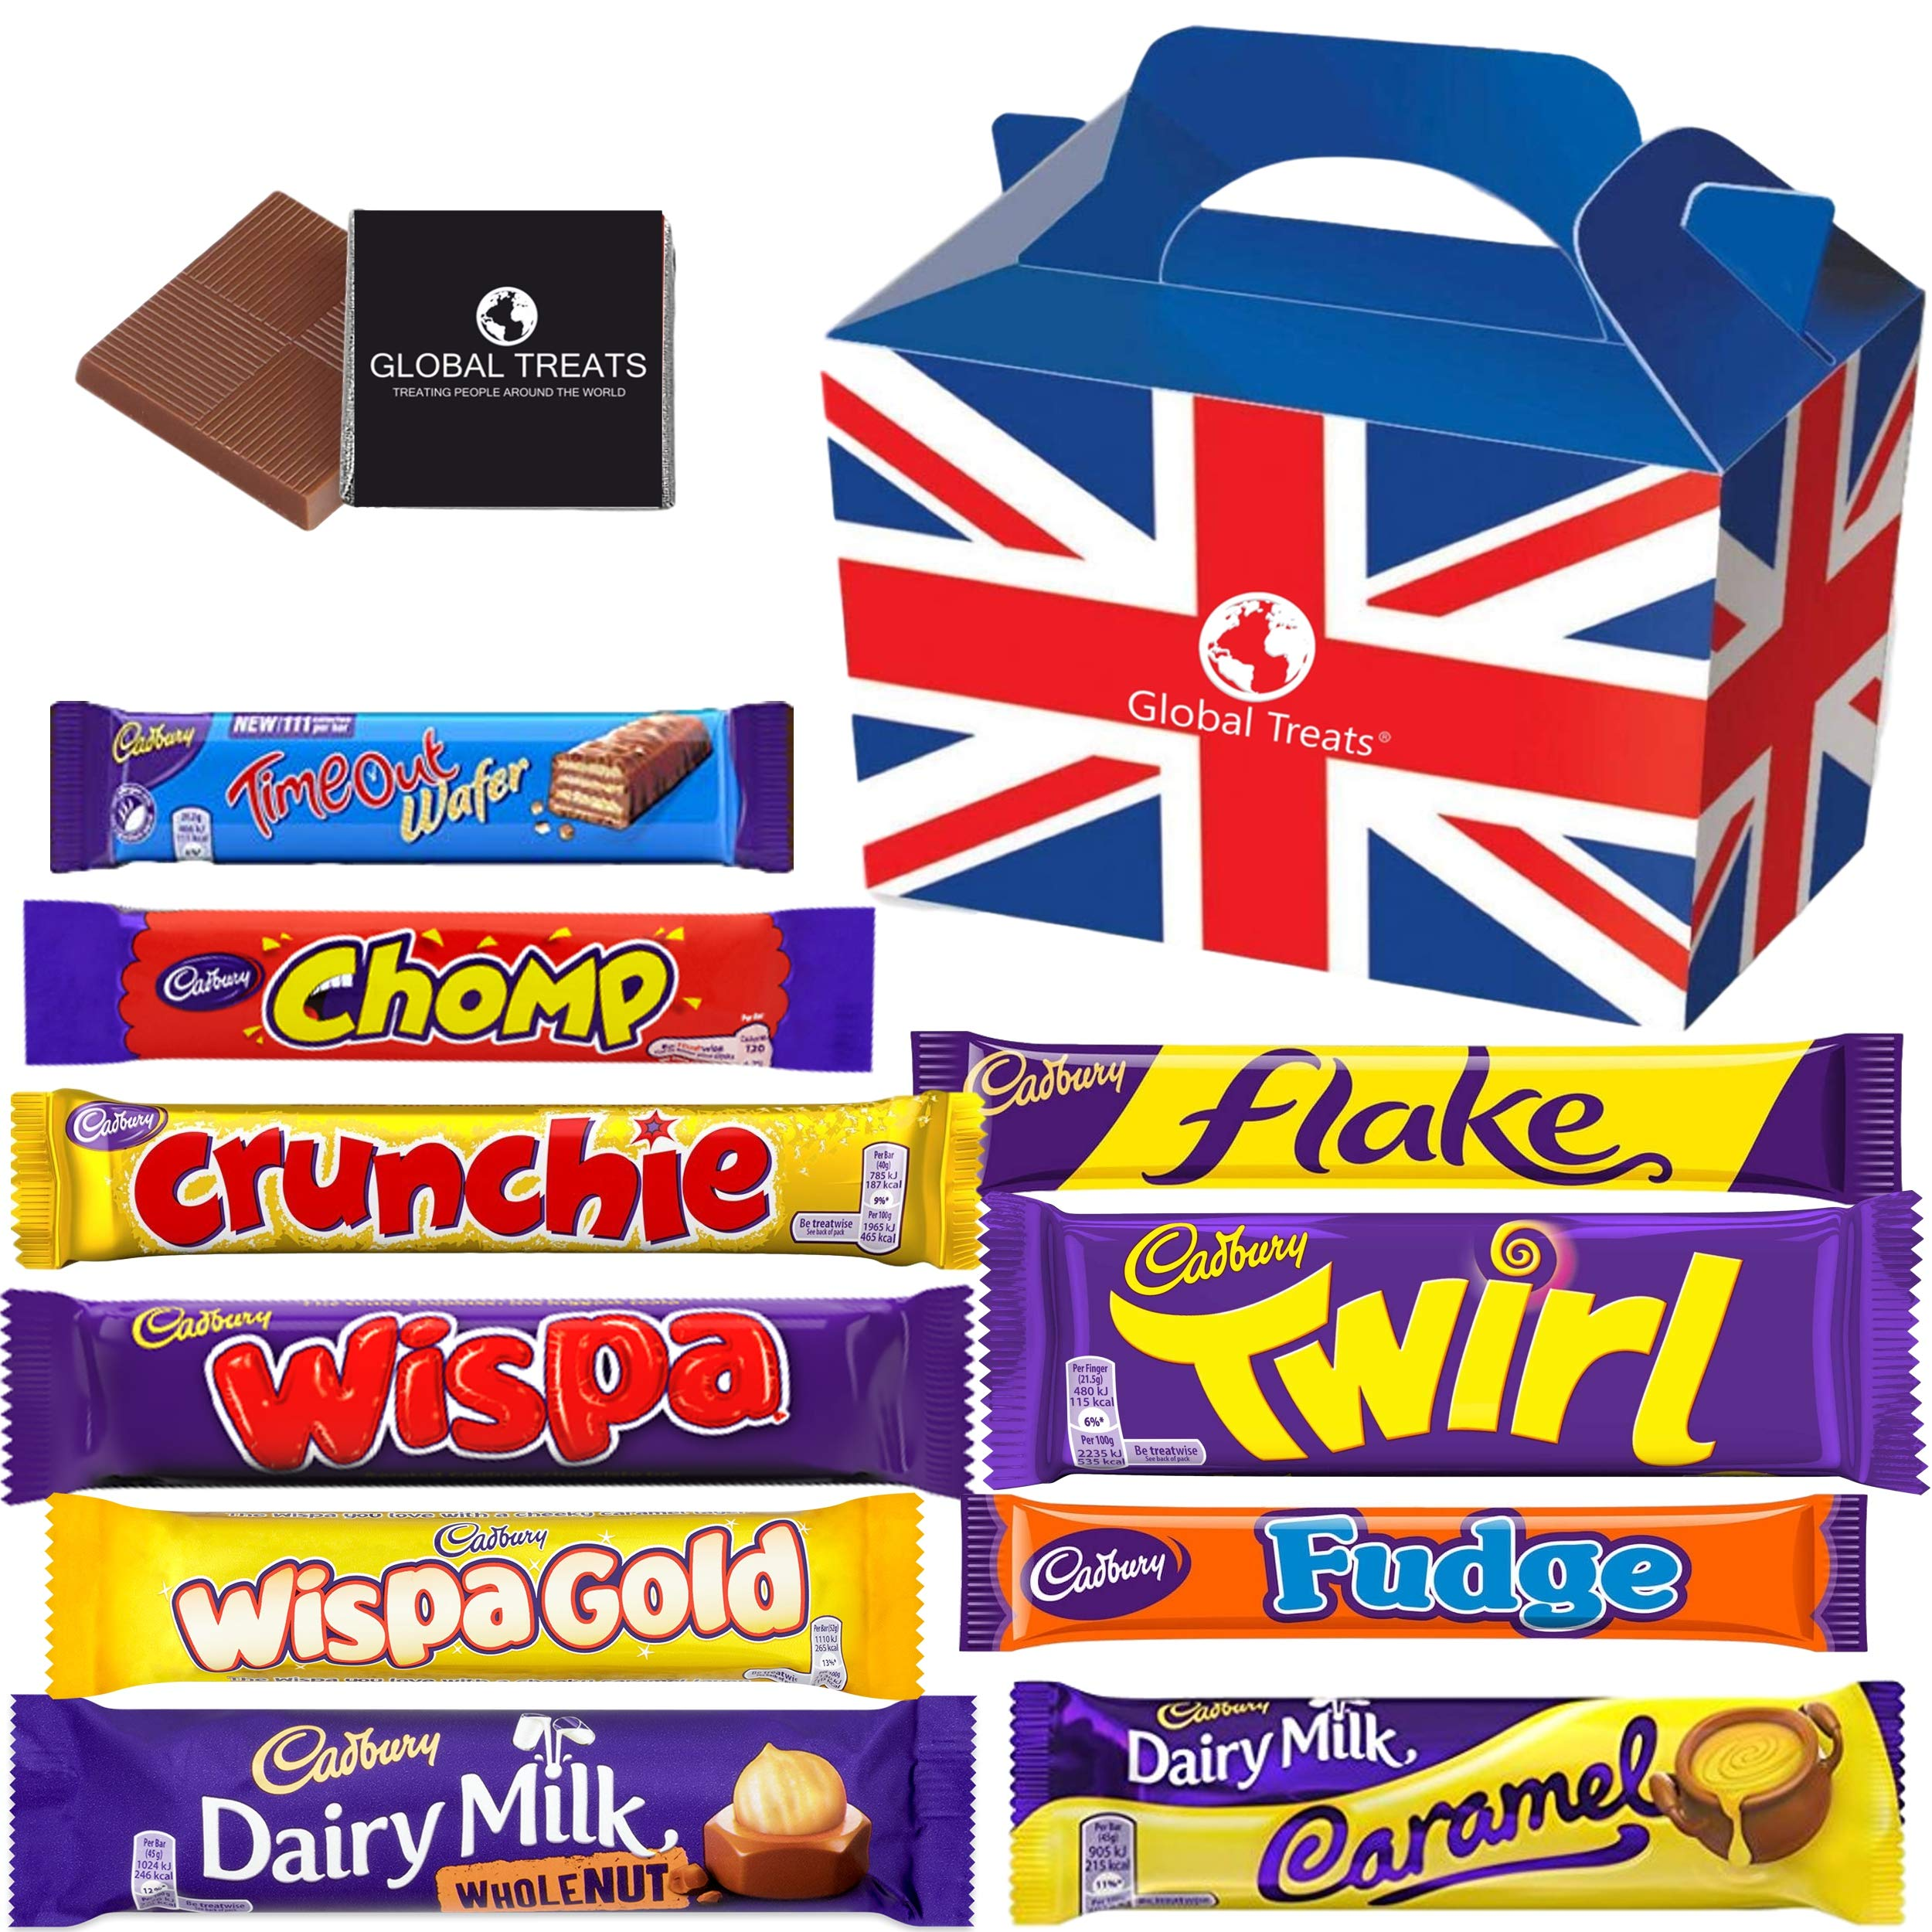 Cadbury Chocolate Gift Pack Medium - 10 FULL SIZE Chocolate bars of delicious Cadbury Chocolate from the UK with unique Gift Box and a free Global Treats Choc & Pen